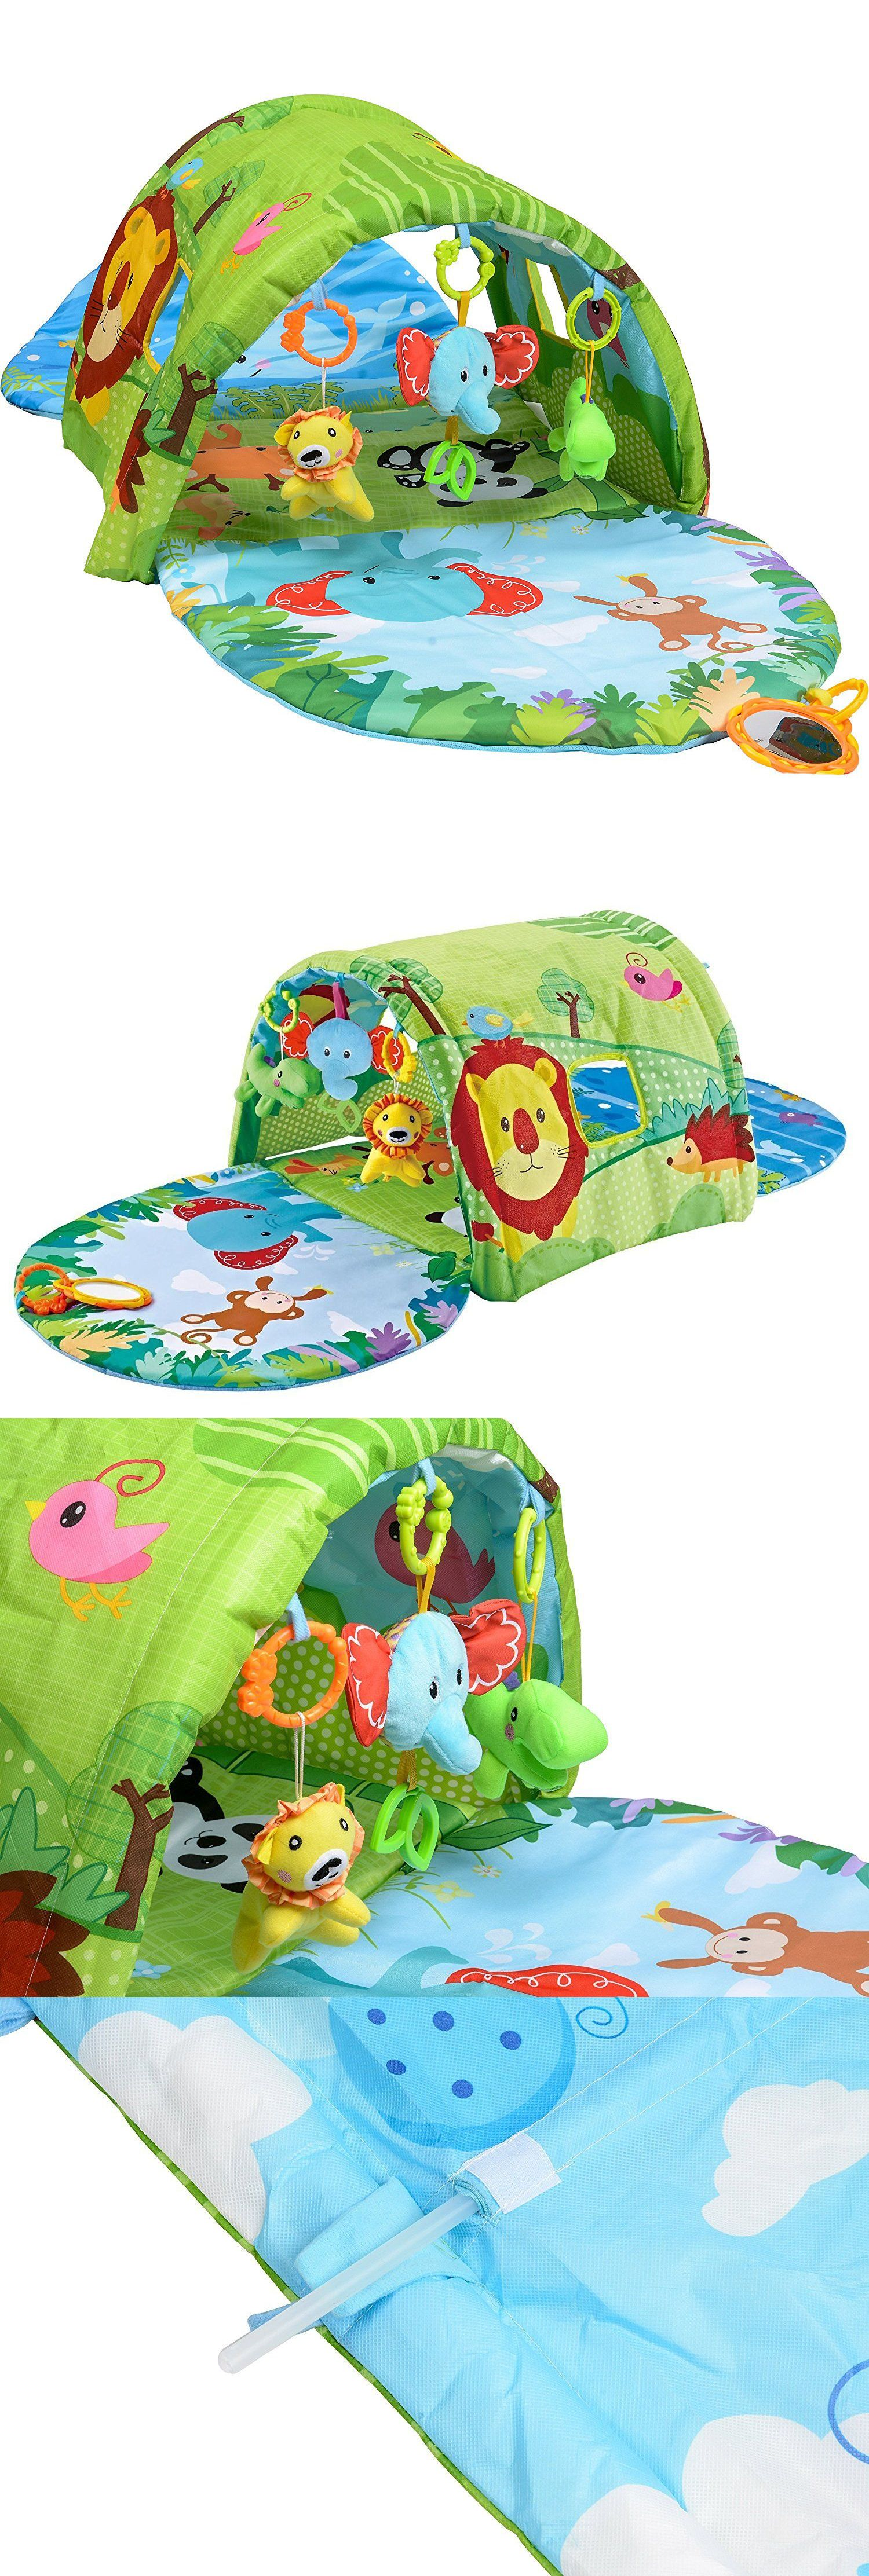 playmat tree for literacy mat learning soft pnc babies itm mats child children play sponge floor numeracy